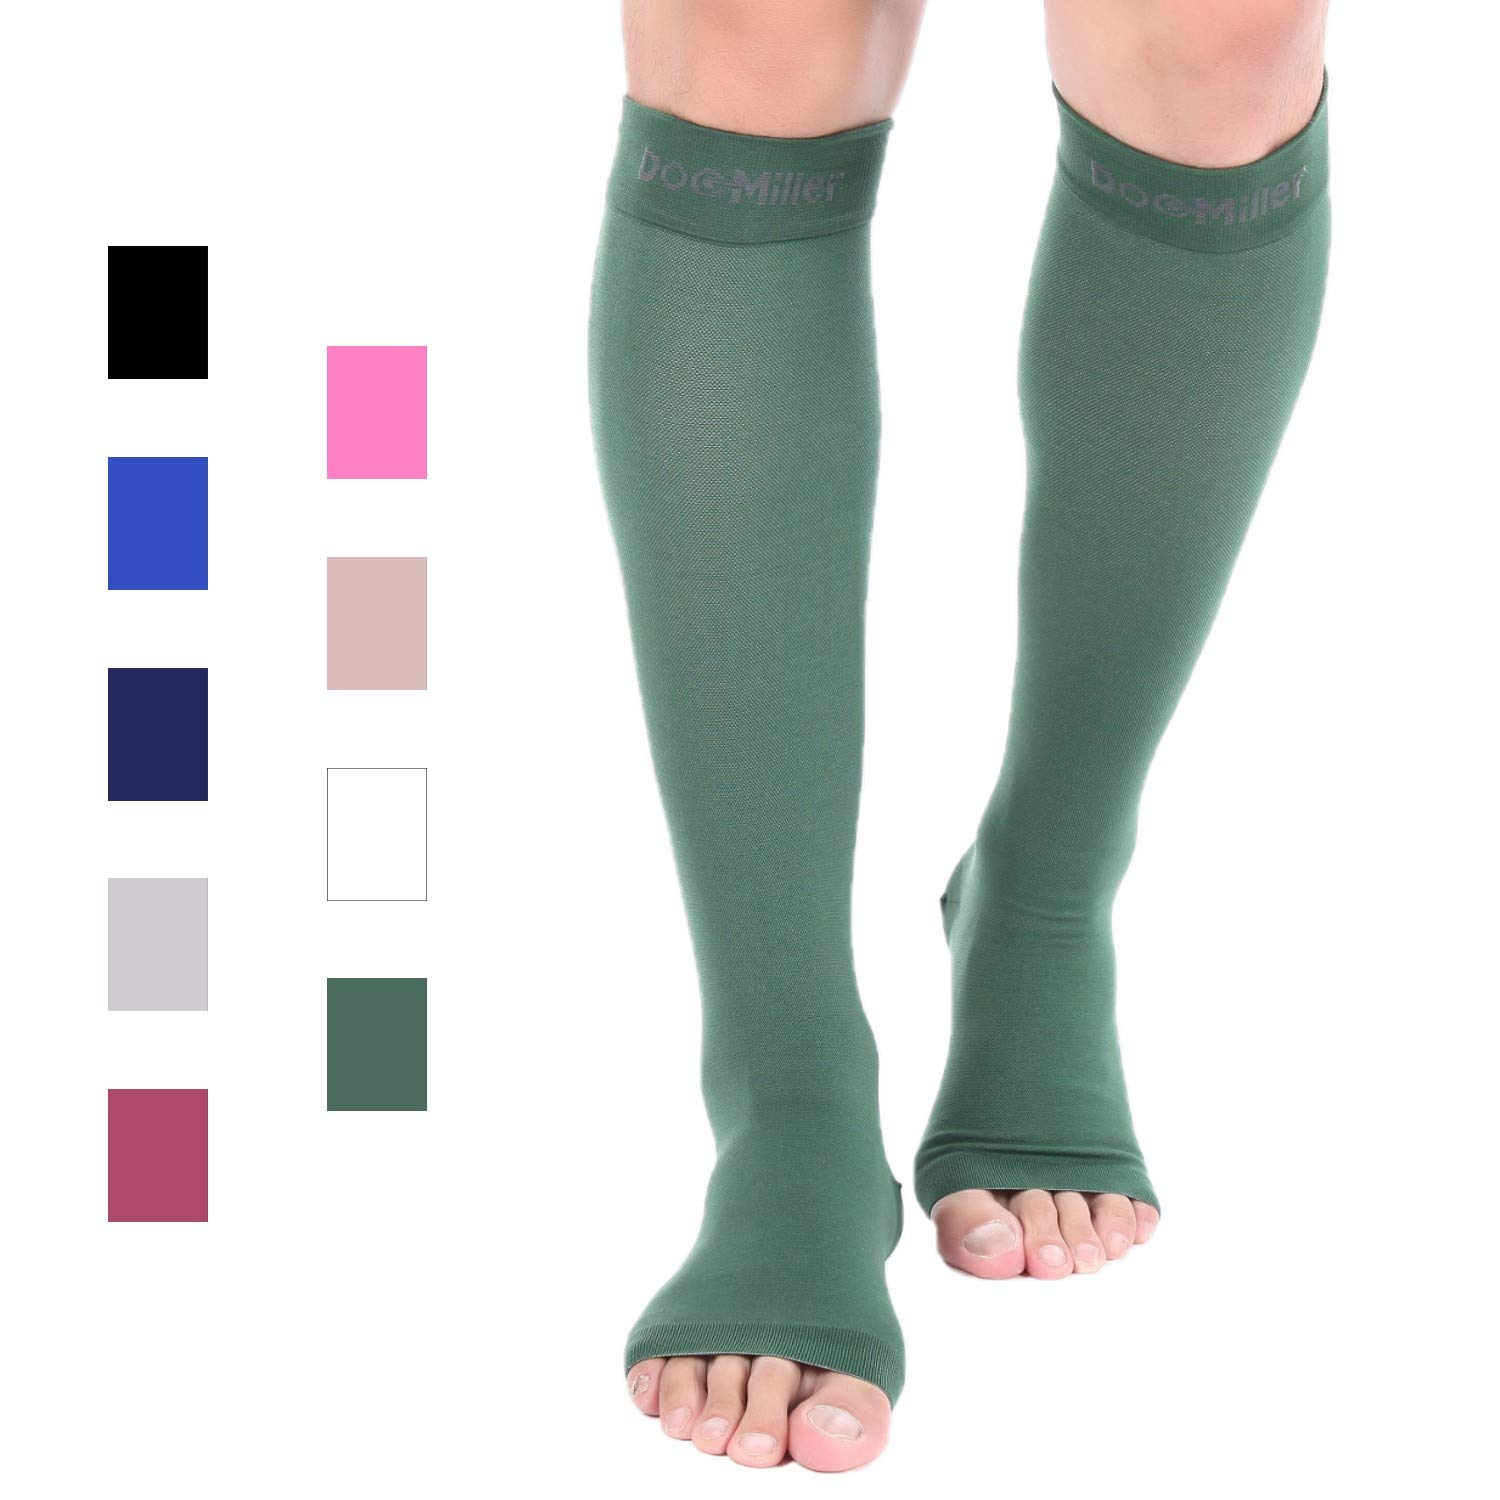 Doc Miller Premium Open Toe Compression Stockings 1 Pair 20-30mmHg Strong Support Graduated Pressure for Sports Running Muscle Recovery Shin Splints Varicose Veins (Dark Green, Open Toe, X-Large) by Doc Miller